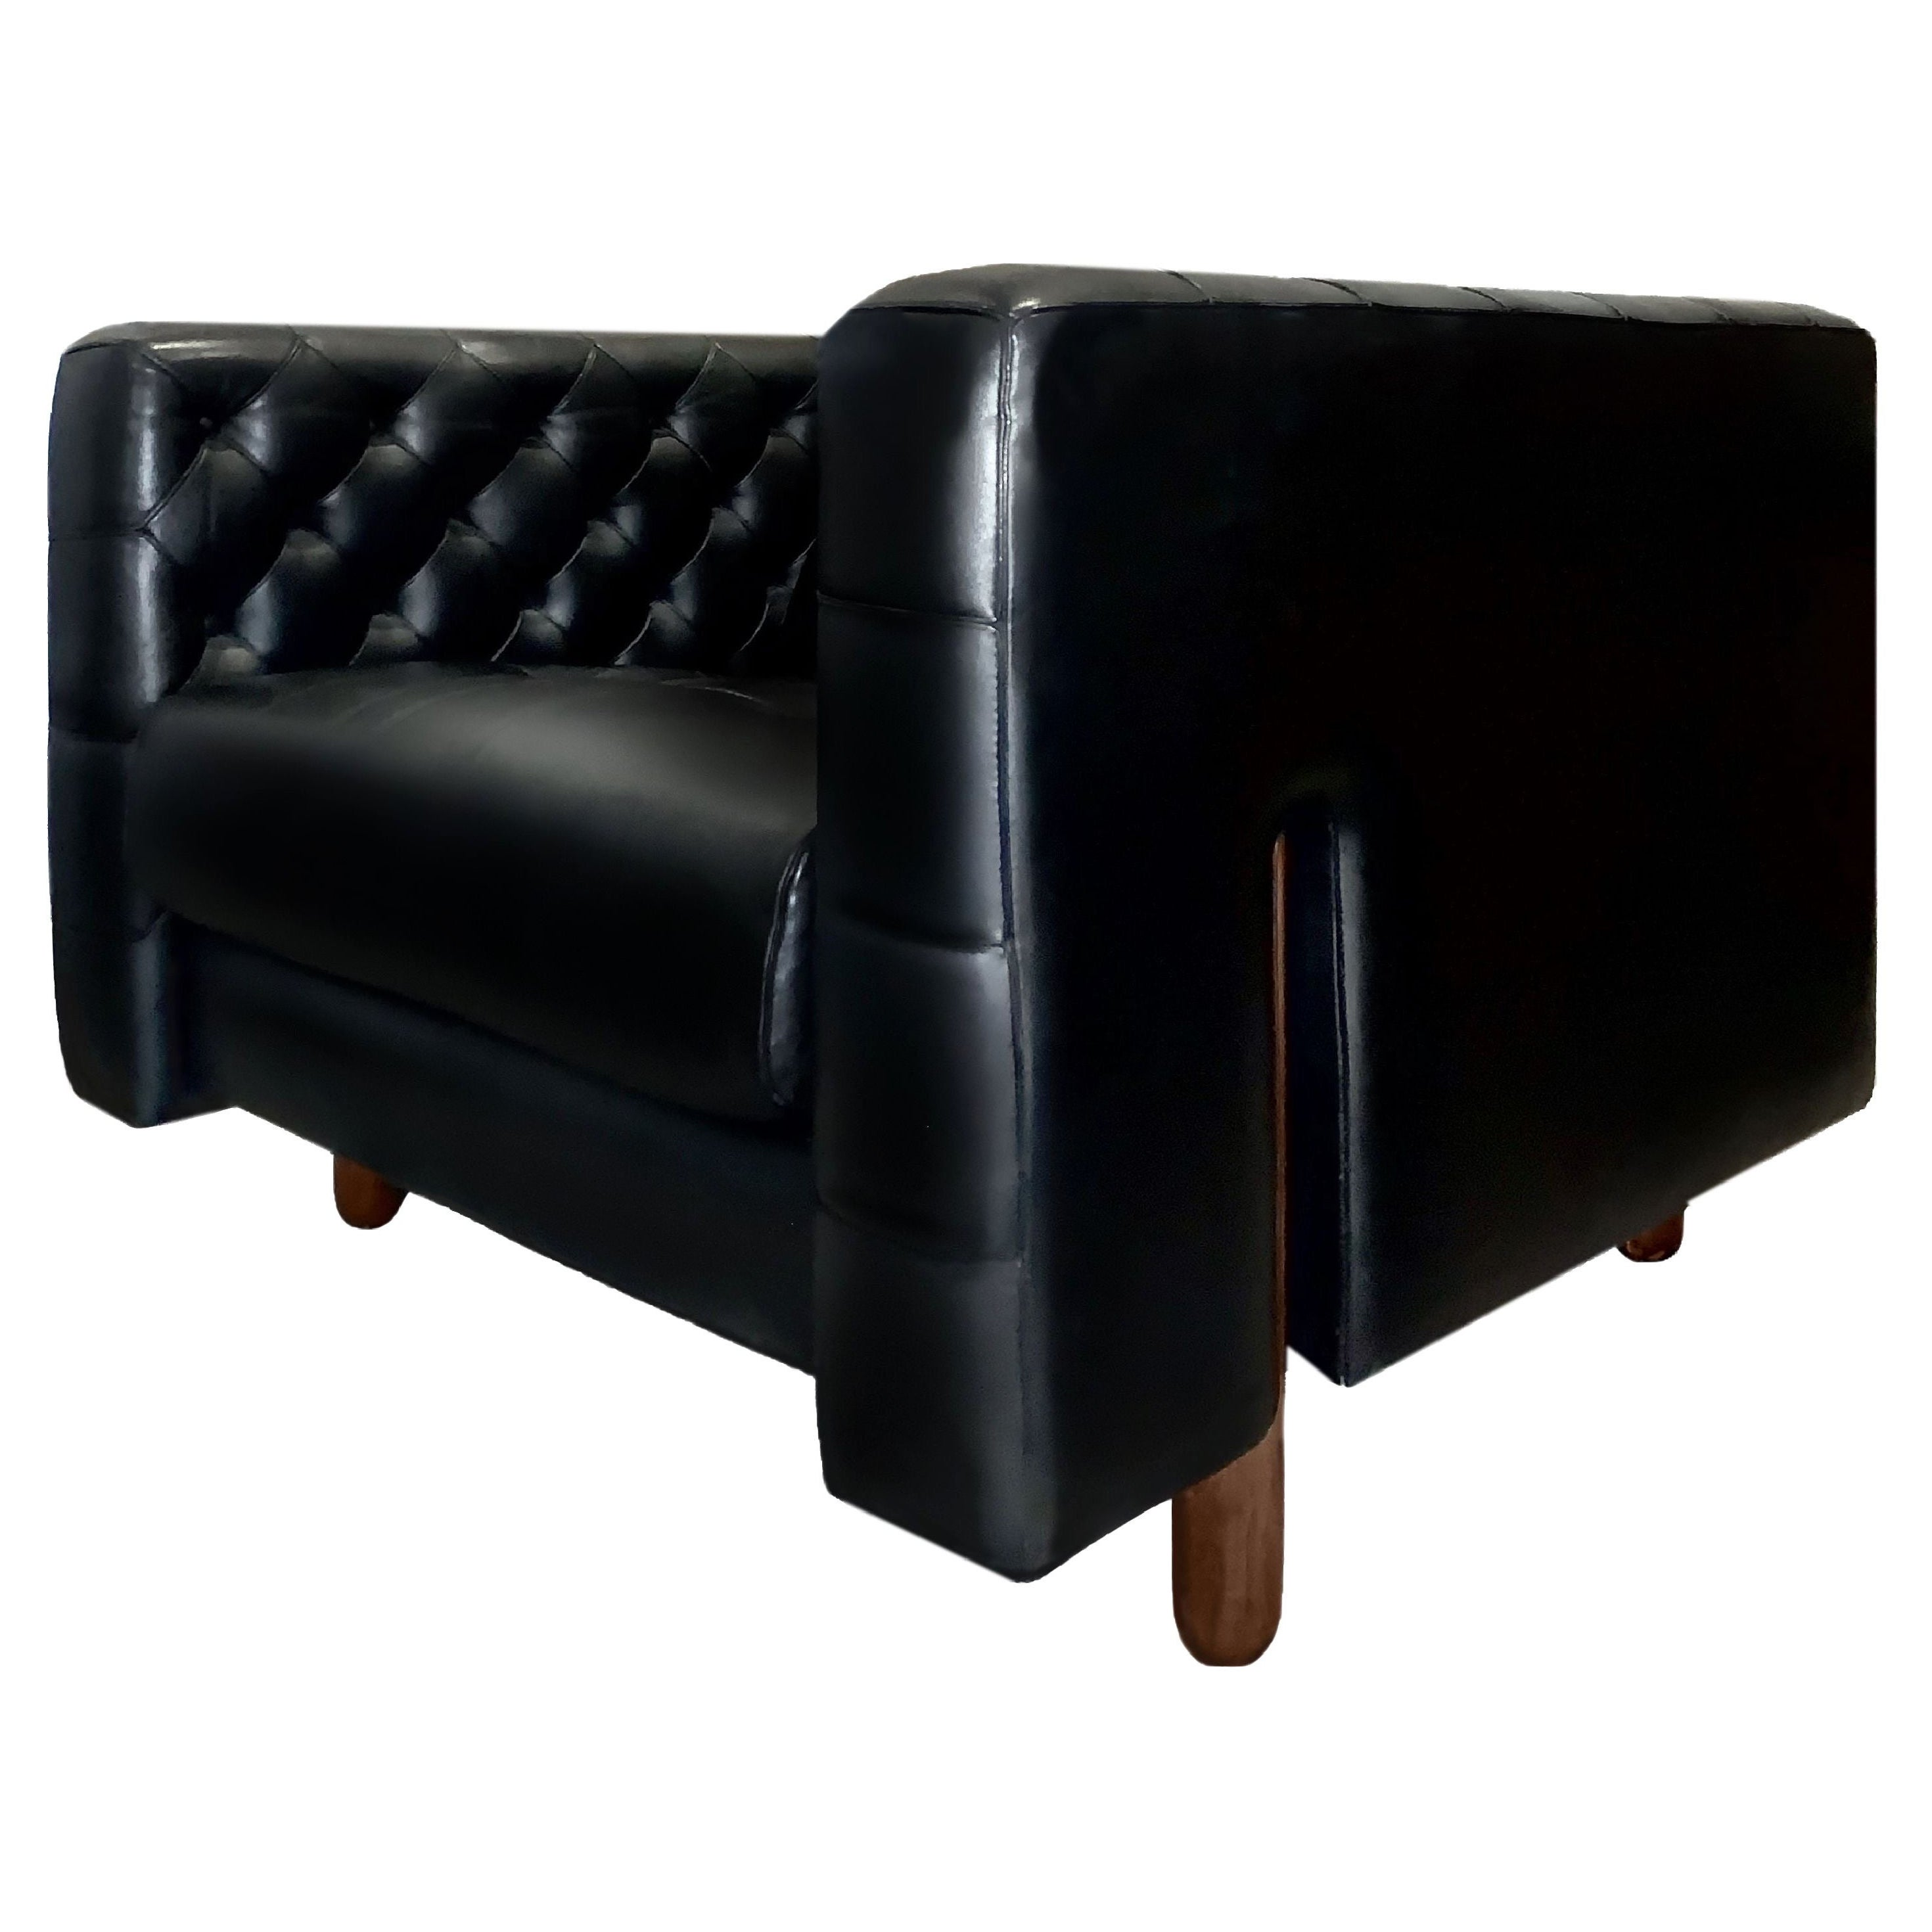 Gianfranco Fratelli Cube Lounge Chair Hand-Stitched Black Leather Cassina, Italy